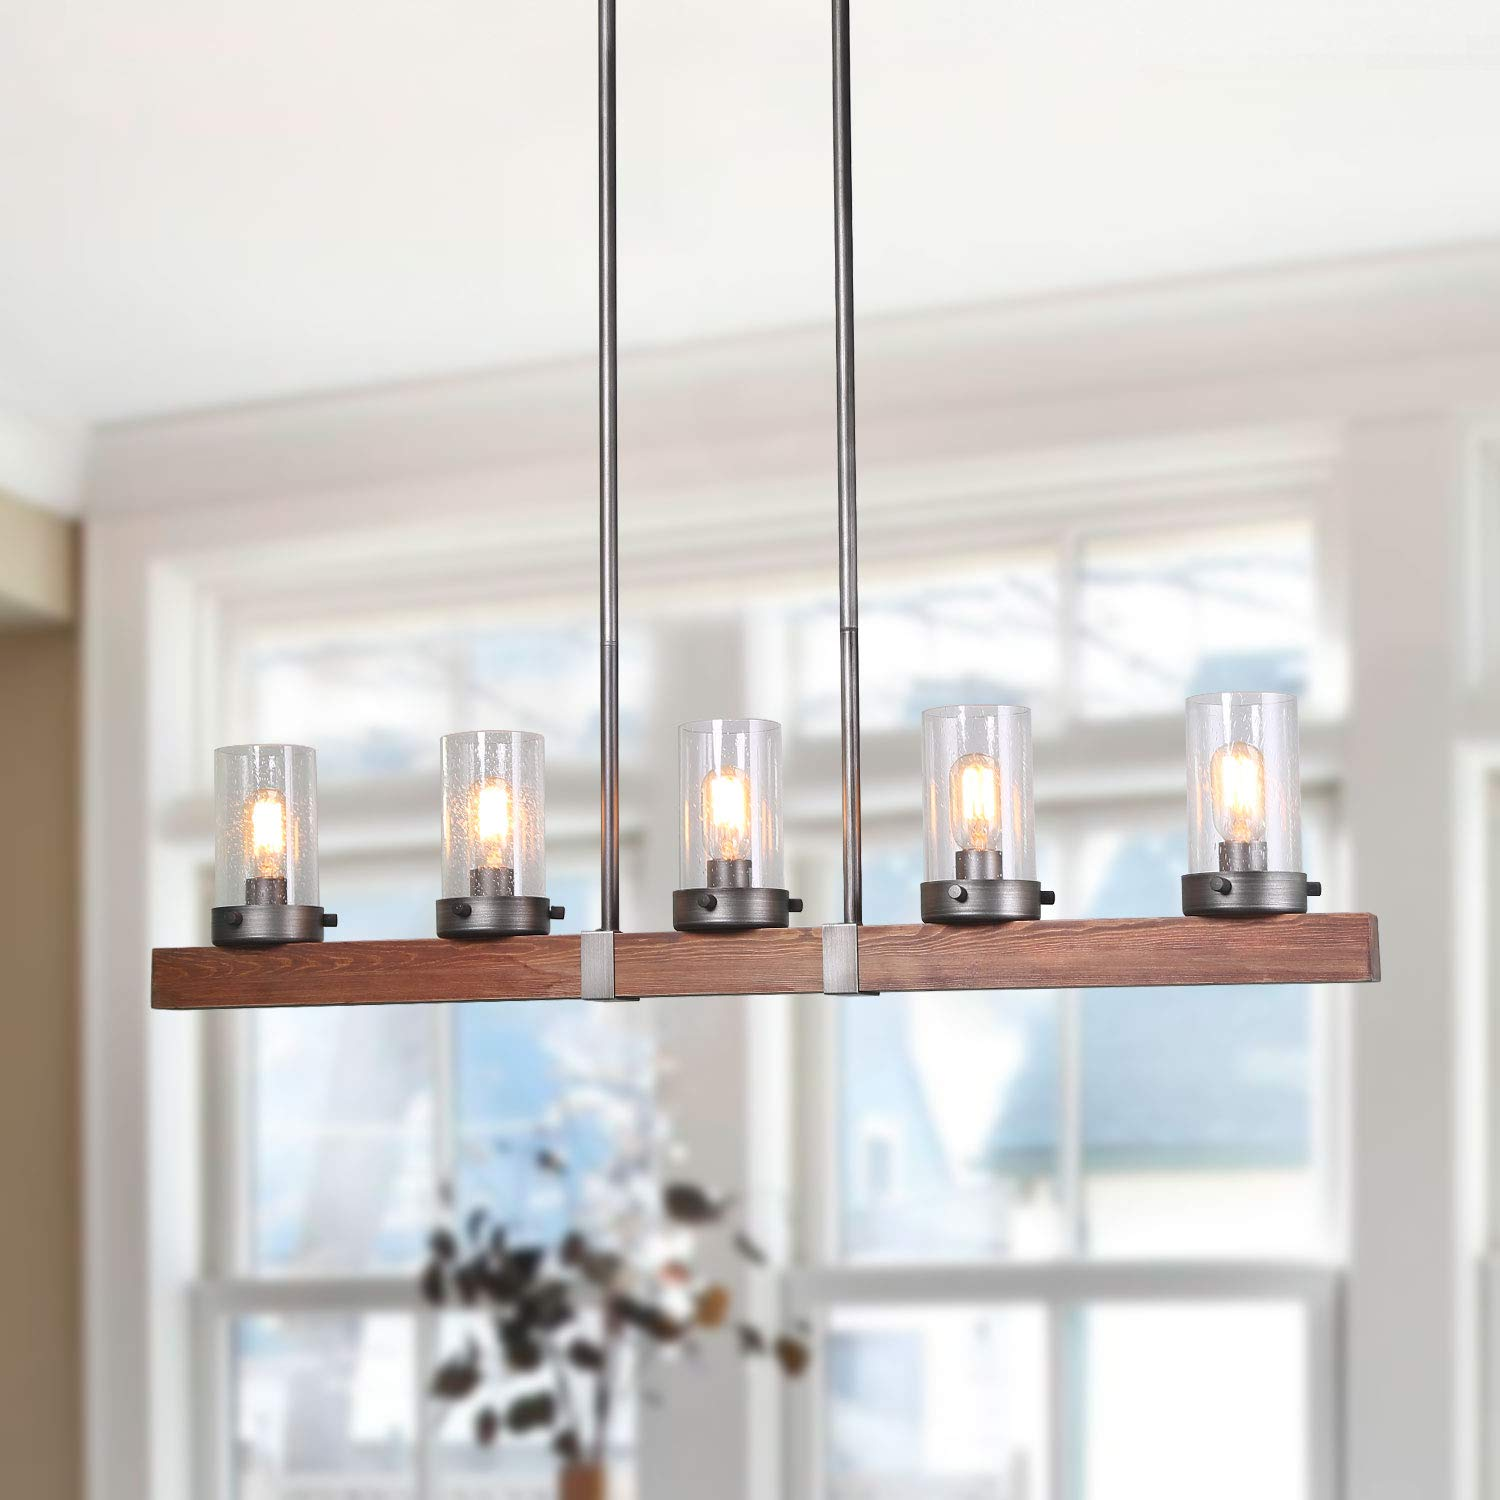 LNC Pendant Lighting for Kitchen Island Farmhouse Chandeliers for Dining Rooms, A03347,